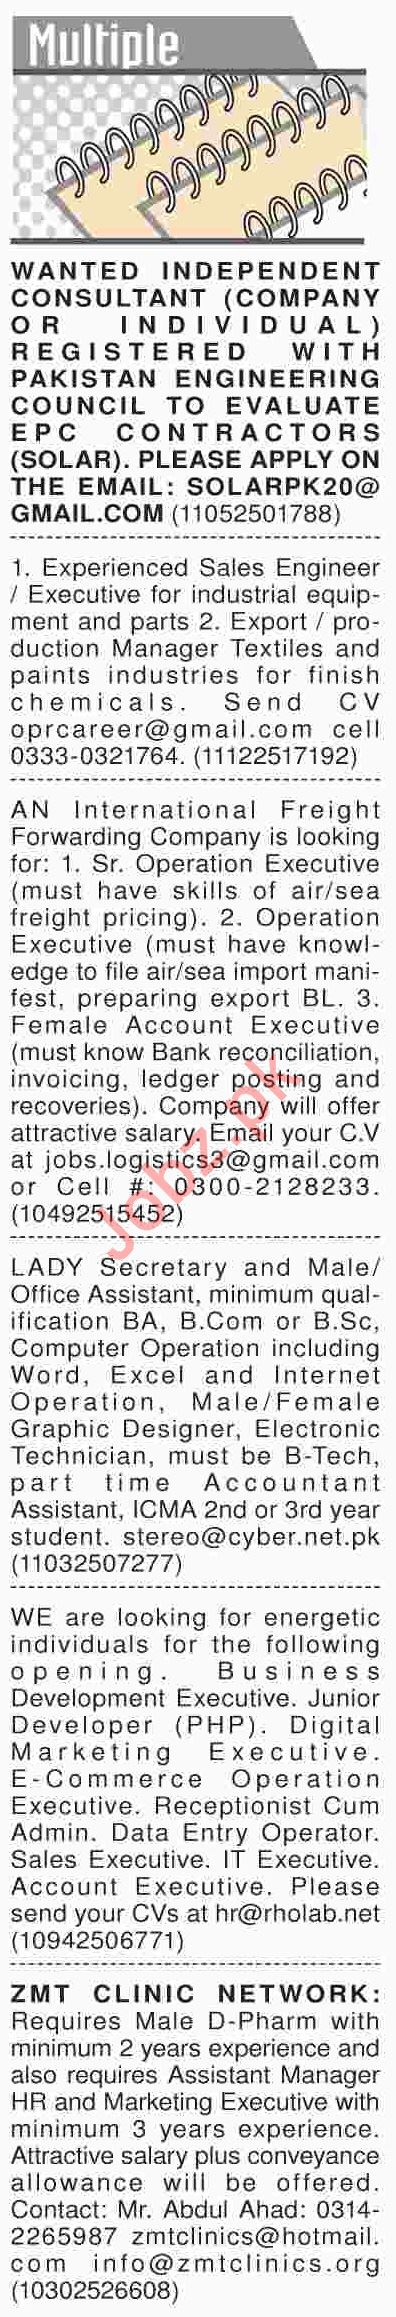 Resume For Freight Forwarding Company Dawn Sunday Classified Ads 6th Jan 2019 For Multiple Staff 2019